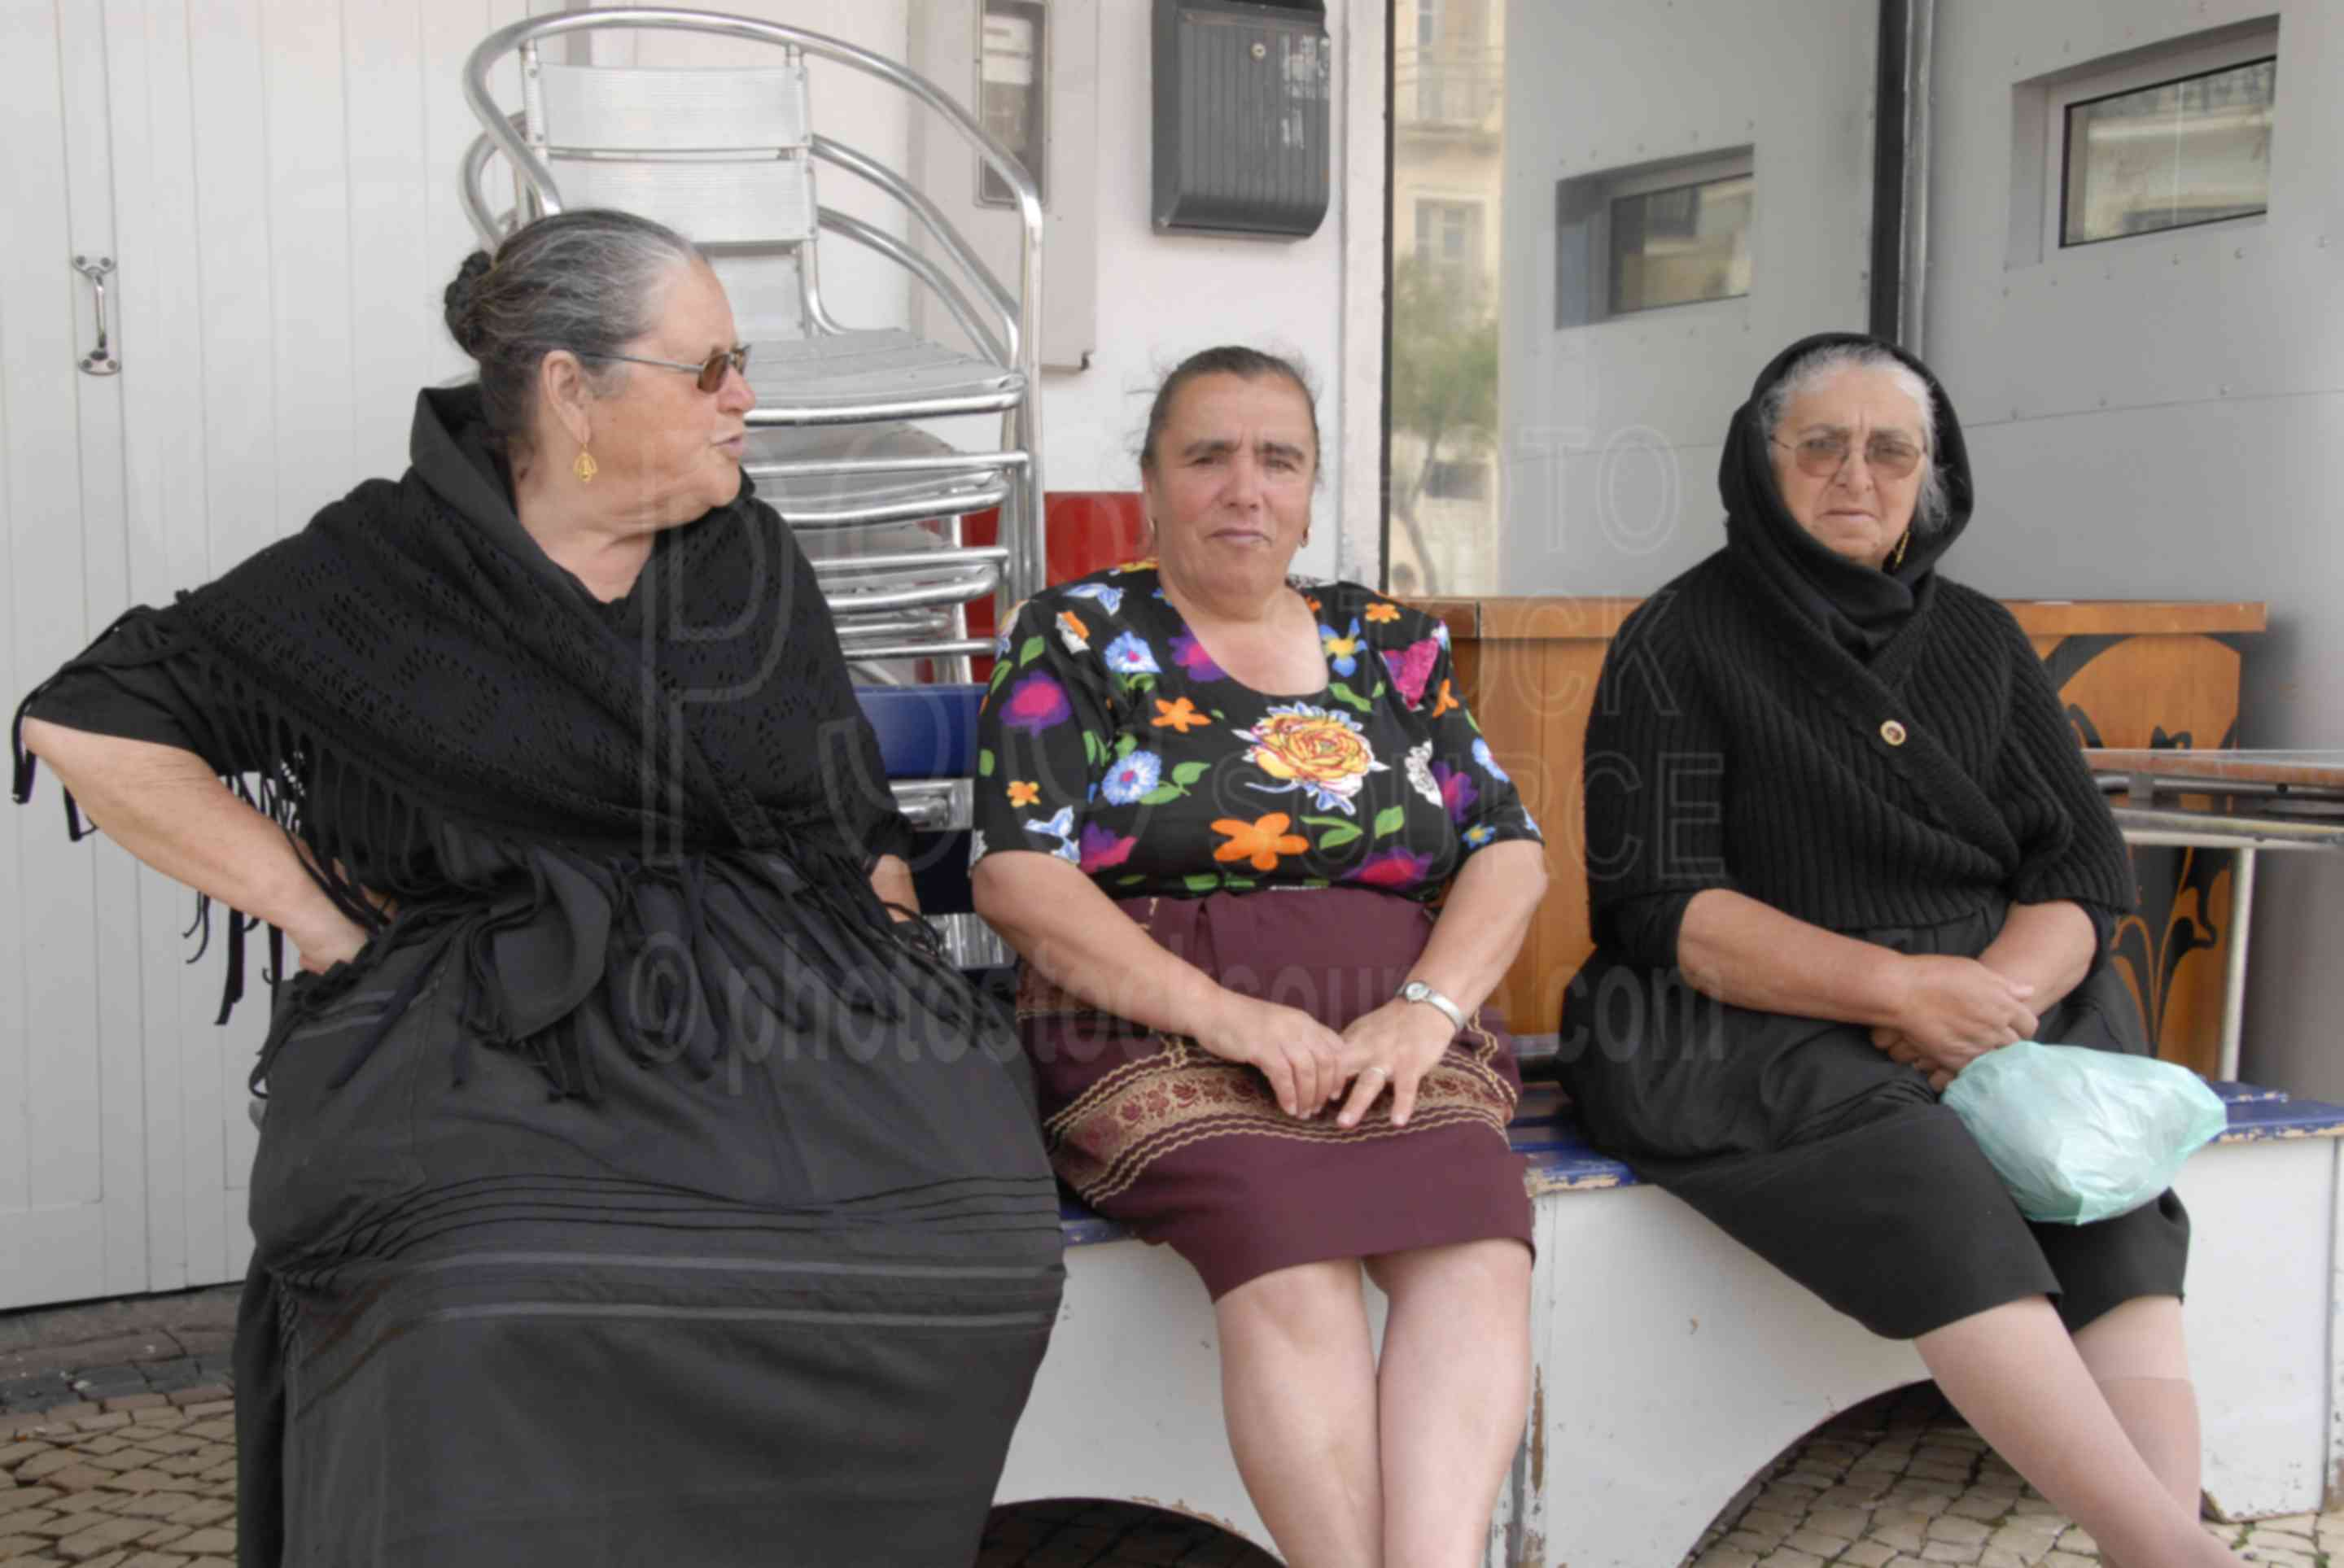 Three Ladies,women,women in black